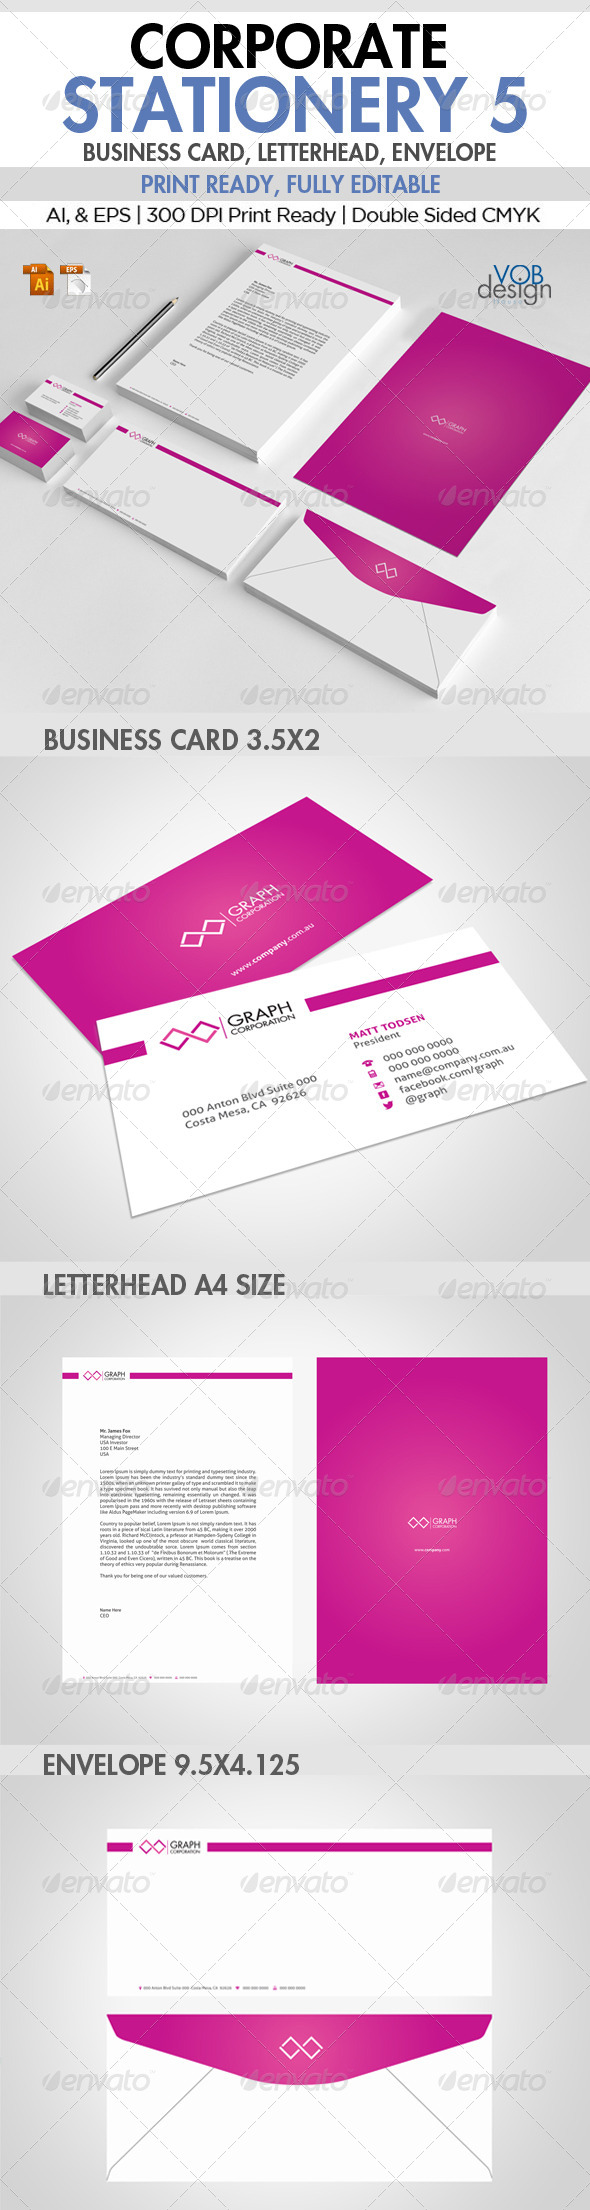 GraphicRiver Corporate Stationery 5 6119441